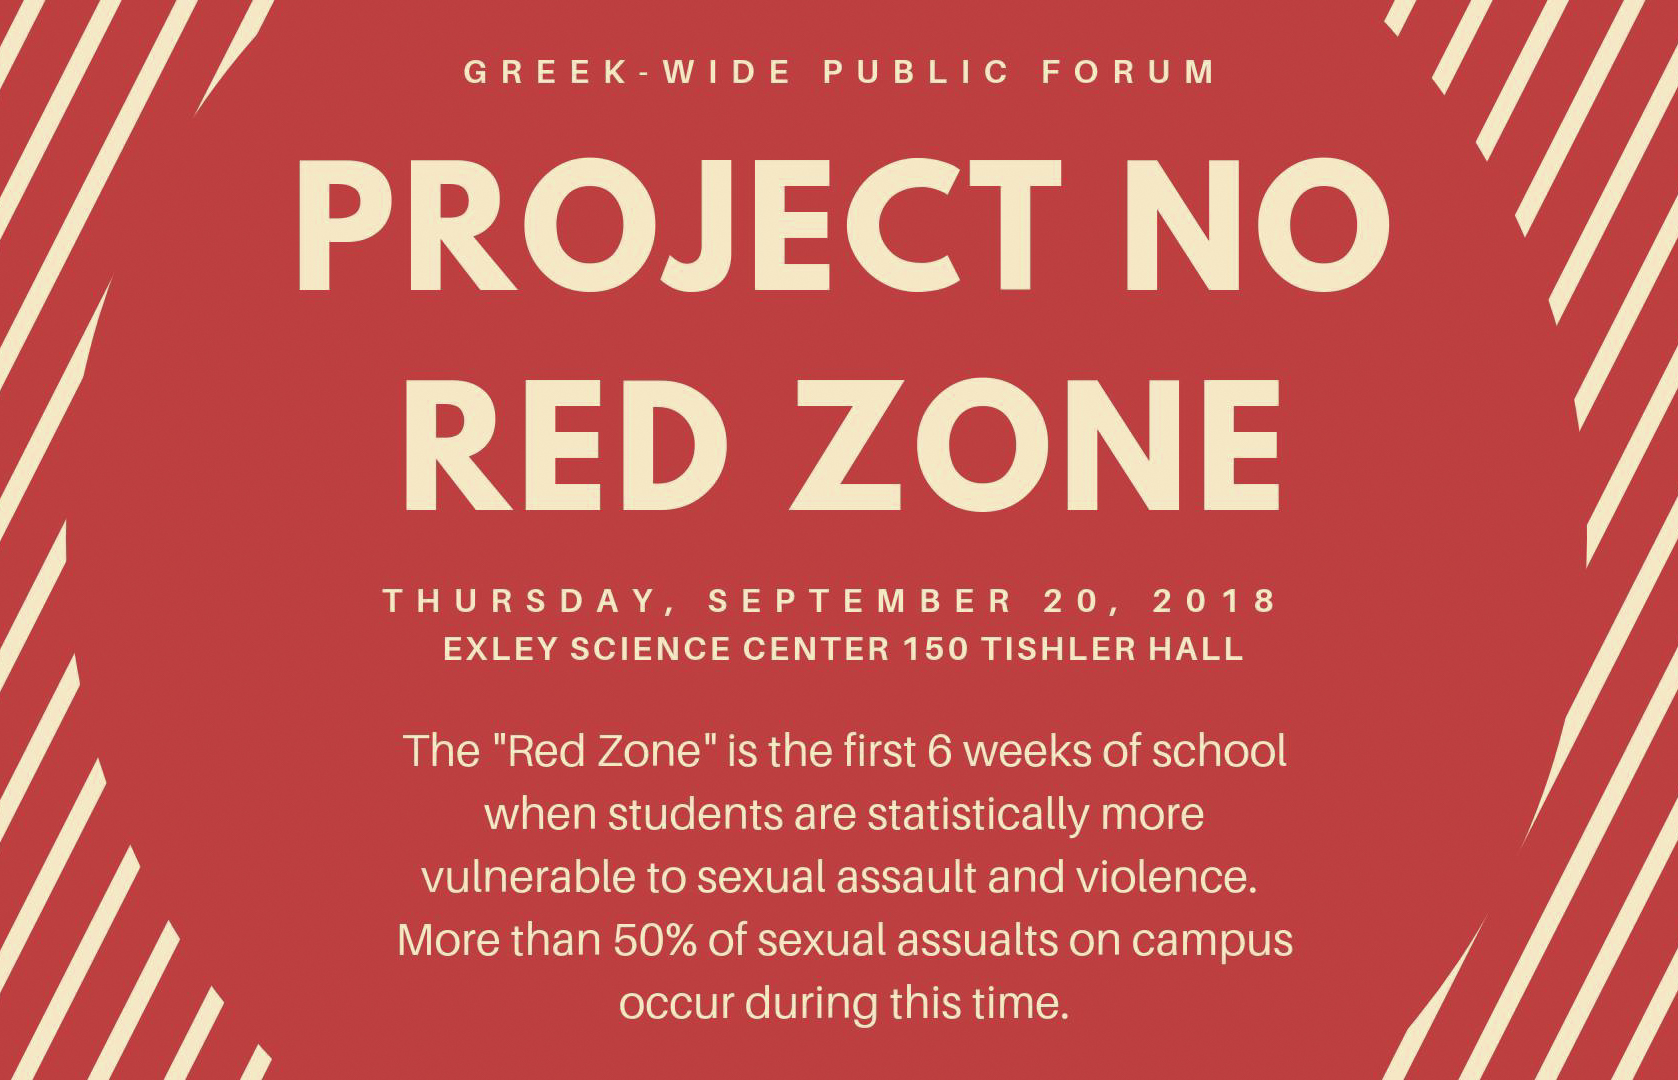 c/o Project No Red Zone